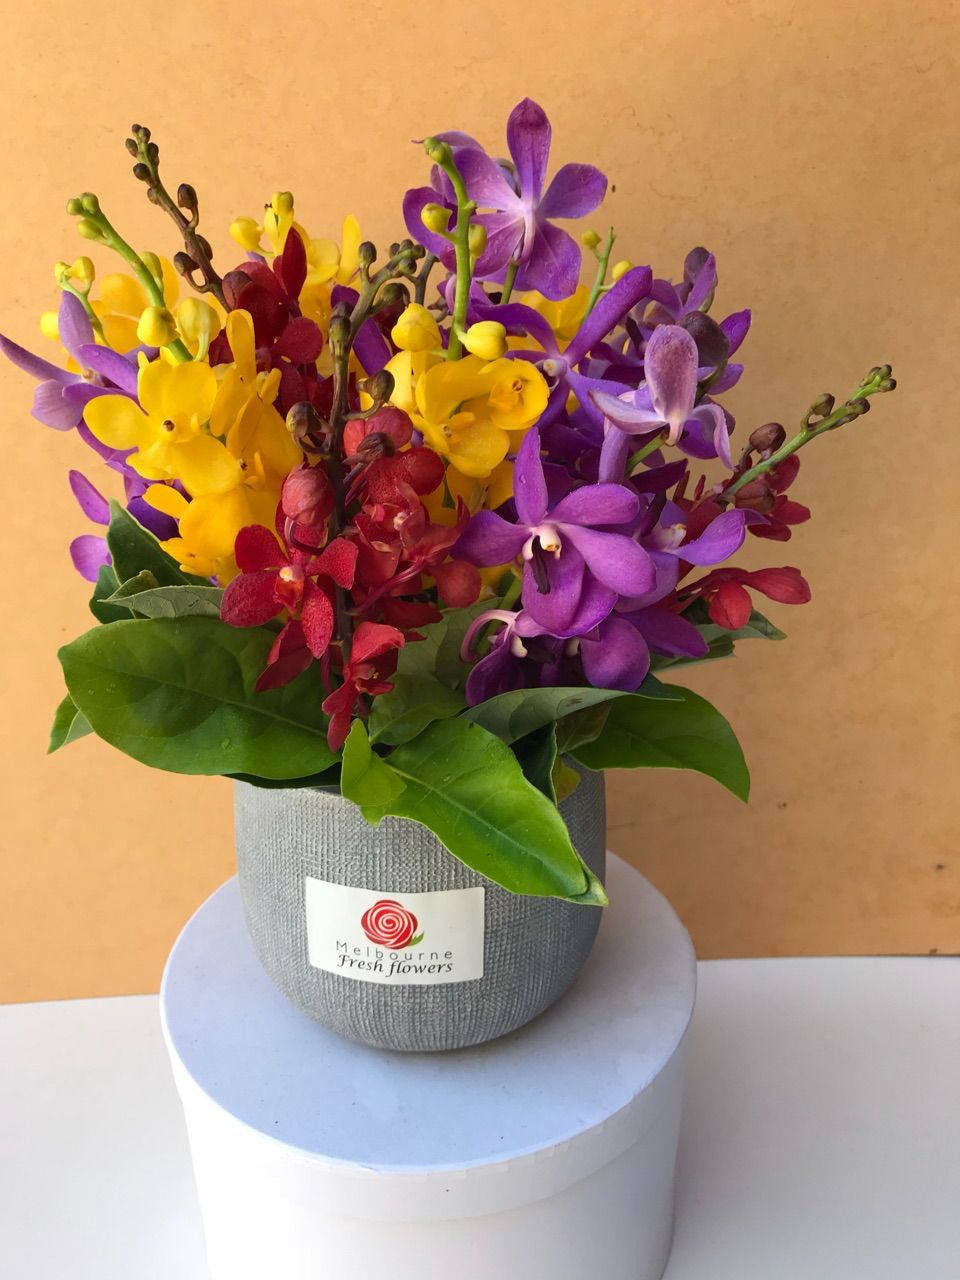 Get cheap exotic orchids flower arrangements online from get cheap exotic orchids flower arrangements online from melbourne fresh flowers they helps you spend less money on more high quality exotic orchids izmirmasajfo